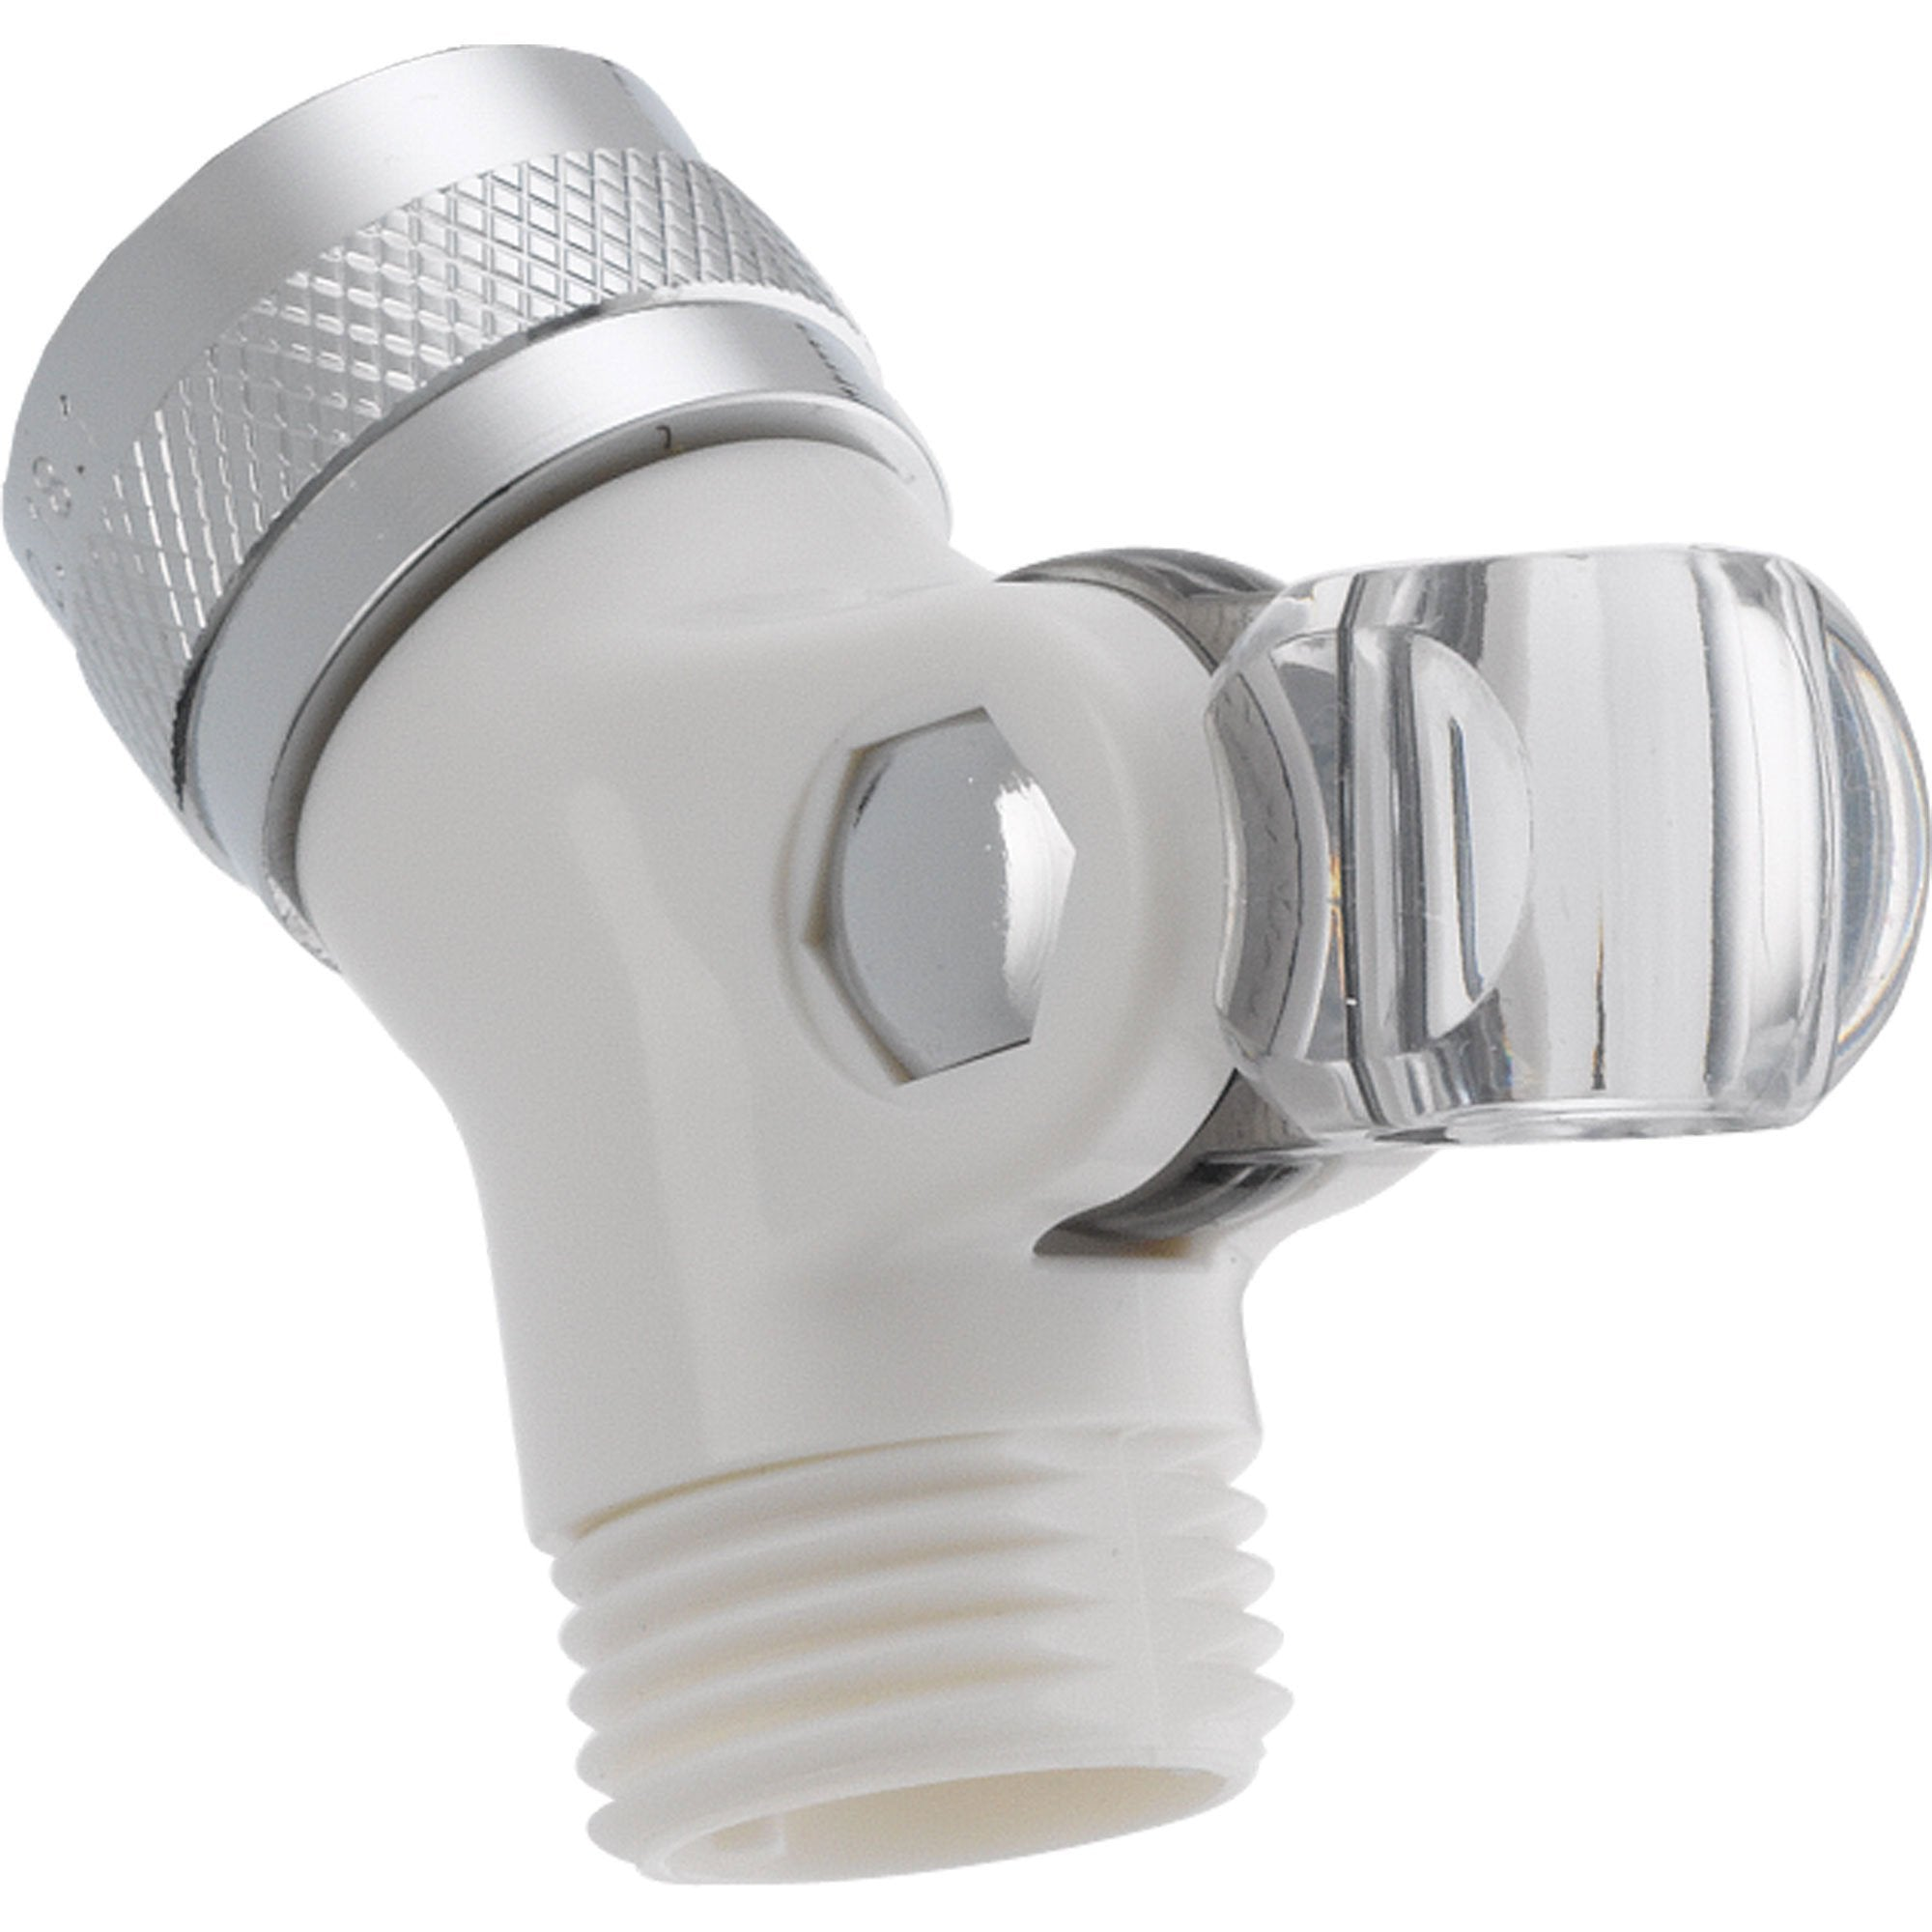 Delta Pin Mount Swivel Connector for Handshower in White 561315